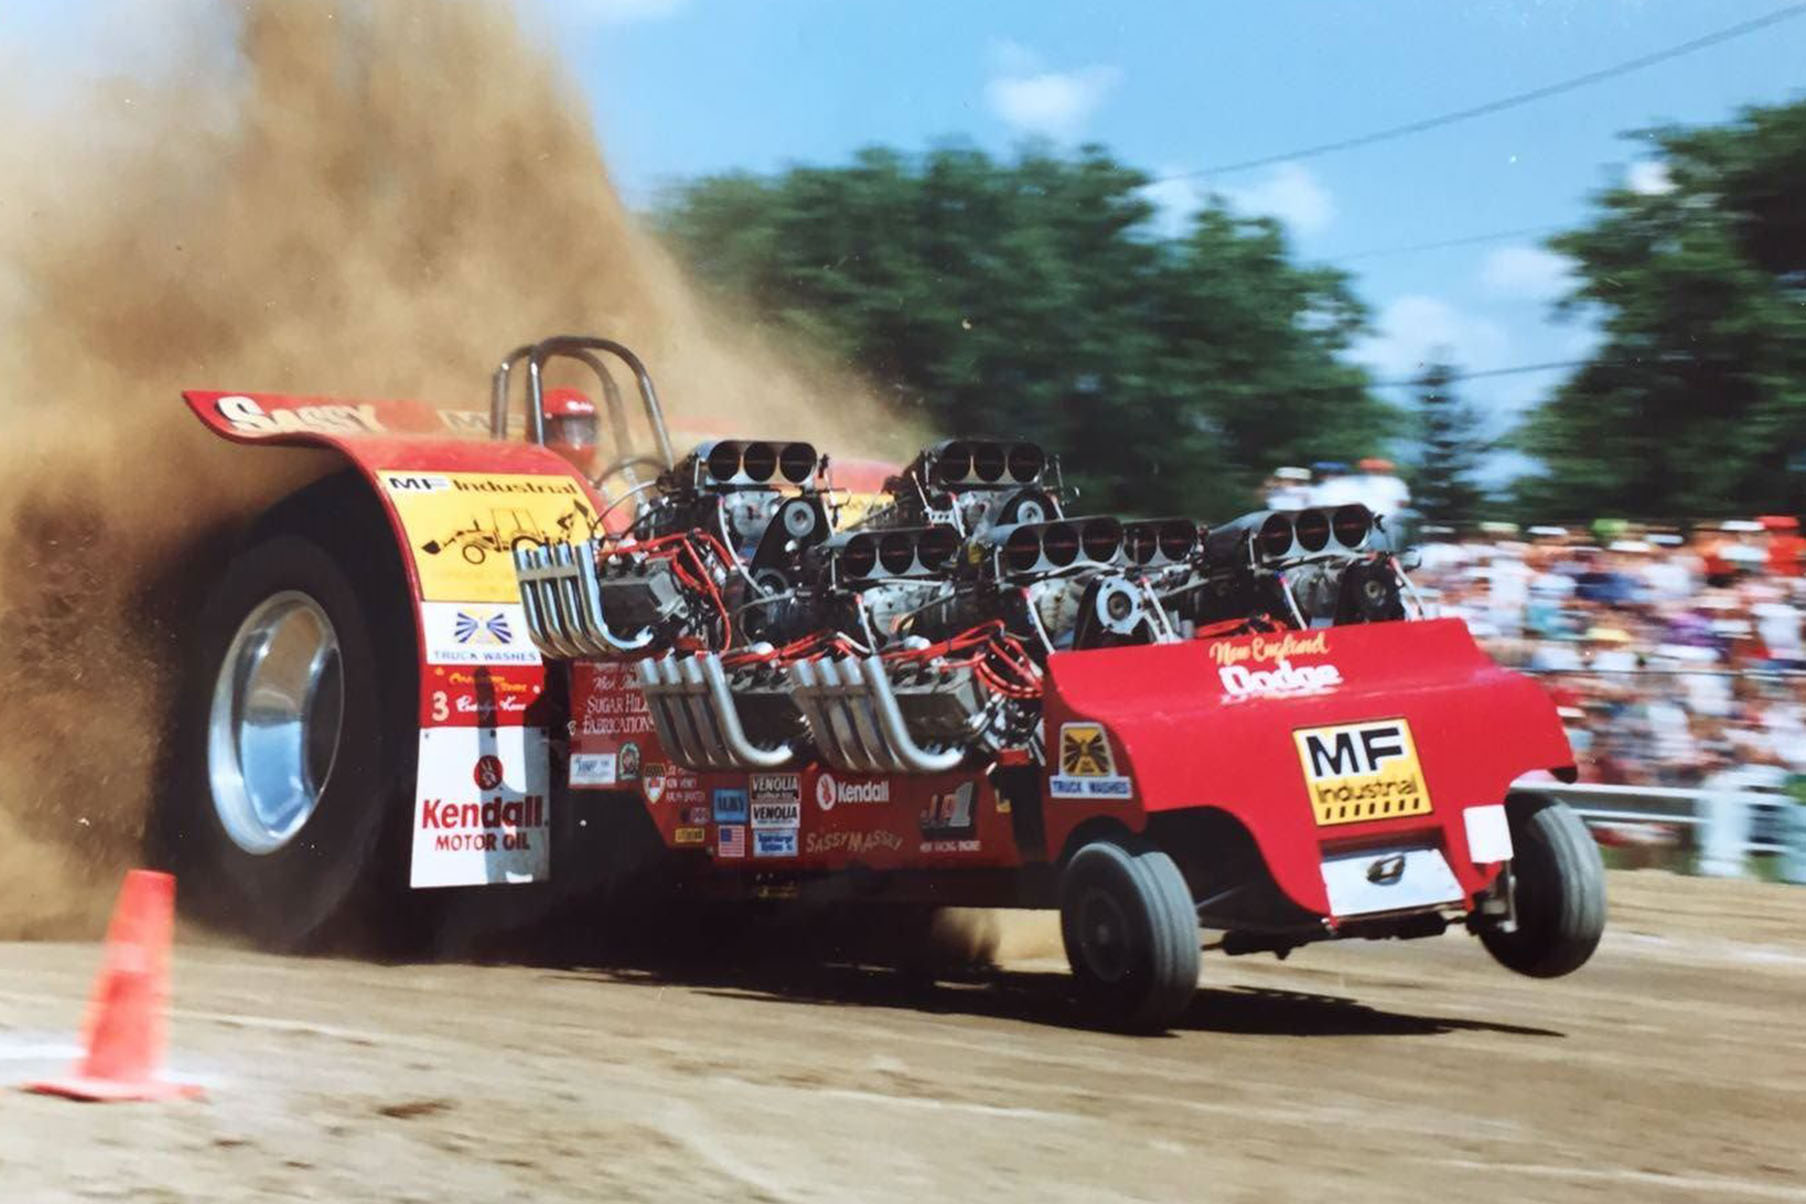 Sassy Racing Engines: An Institution of Supercharged, Hemi